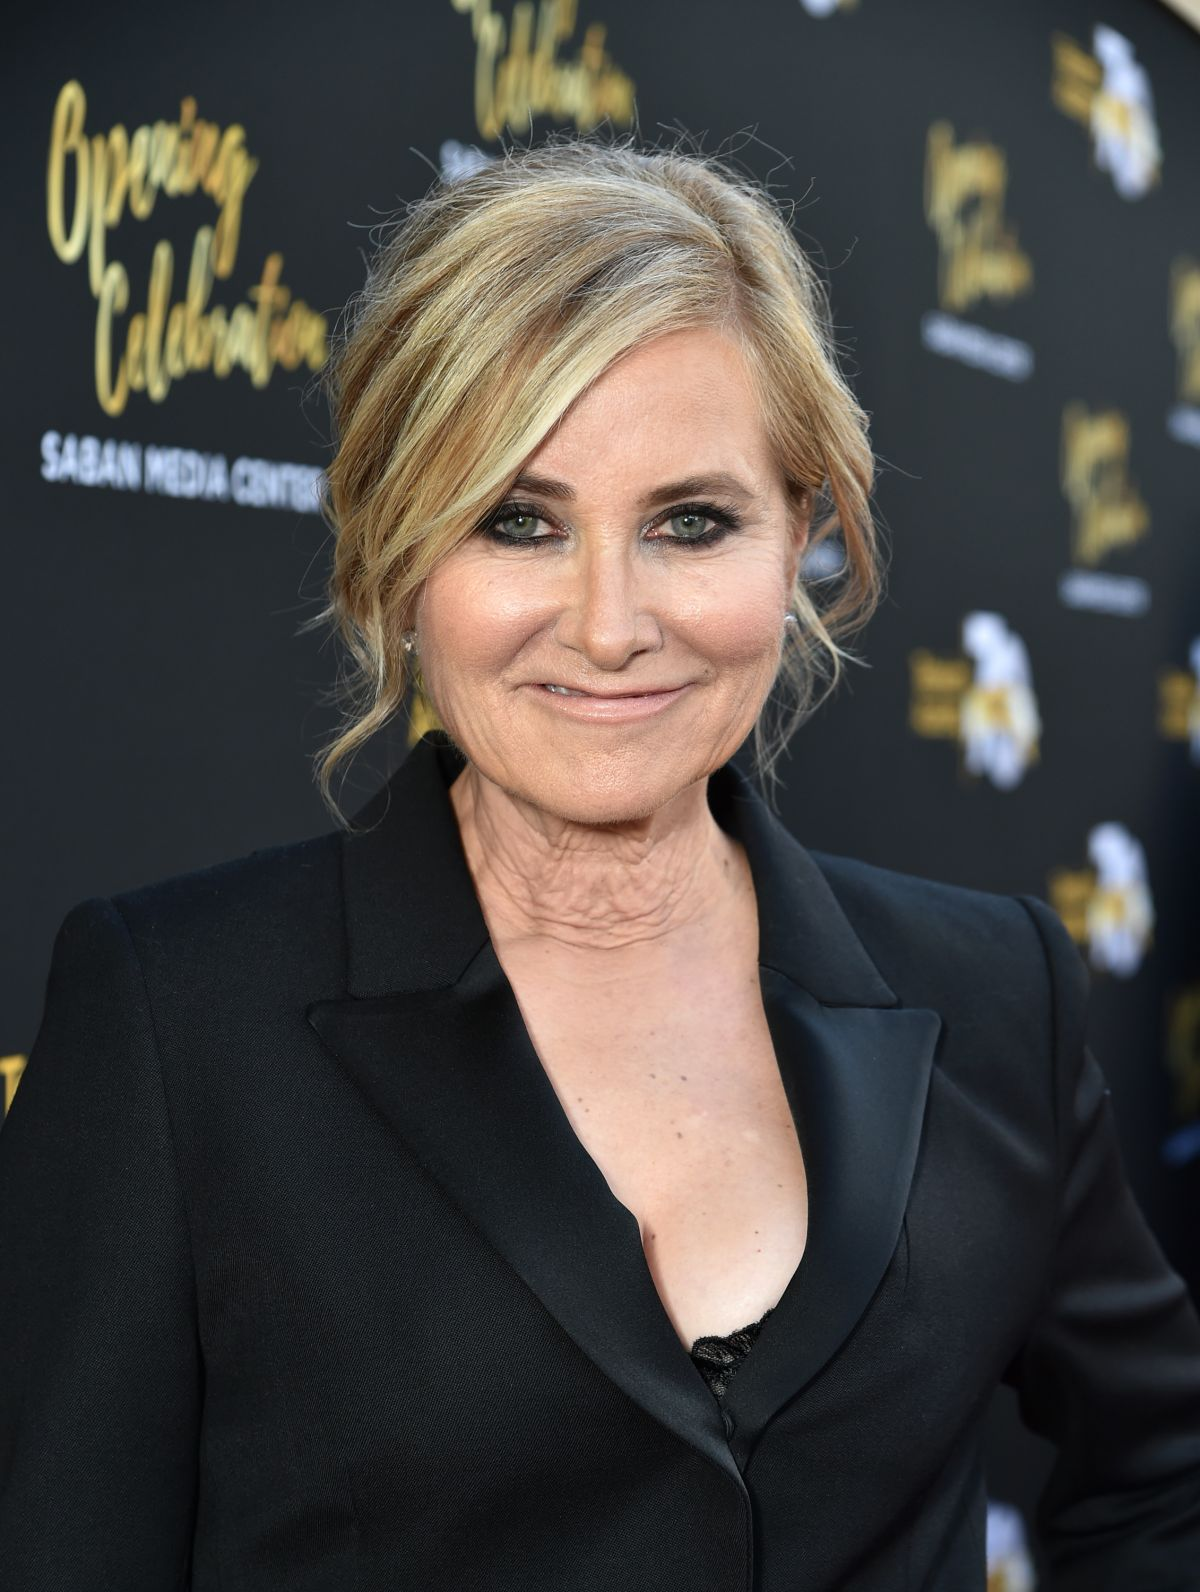 Get more on actress Maureen McCormick from her role as Marcia Brady on The Brady Bunch to her battle with drug addiction and eventual rehab stay to